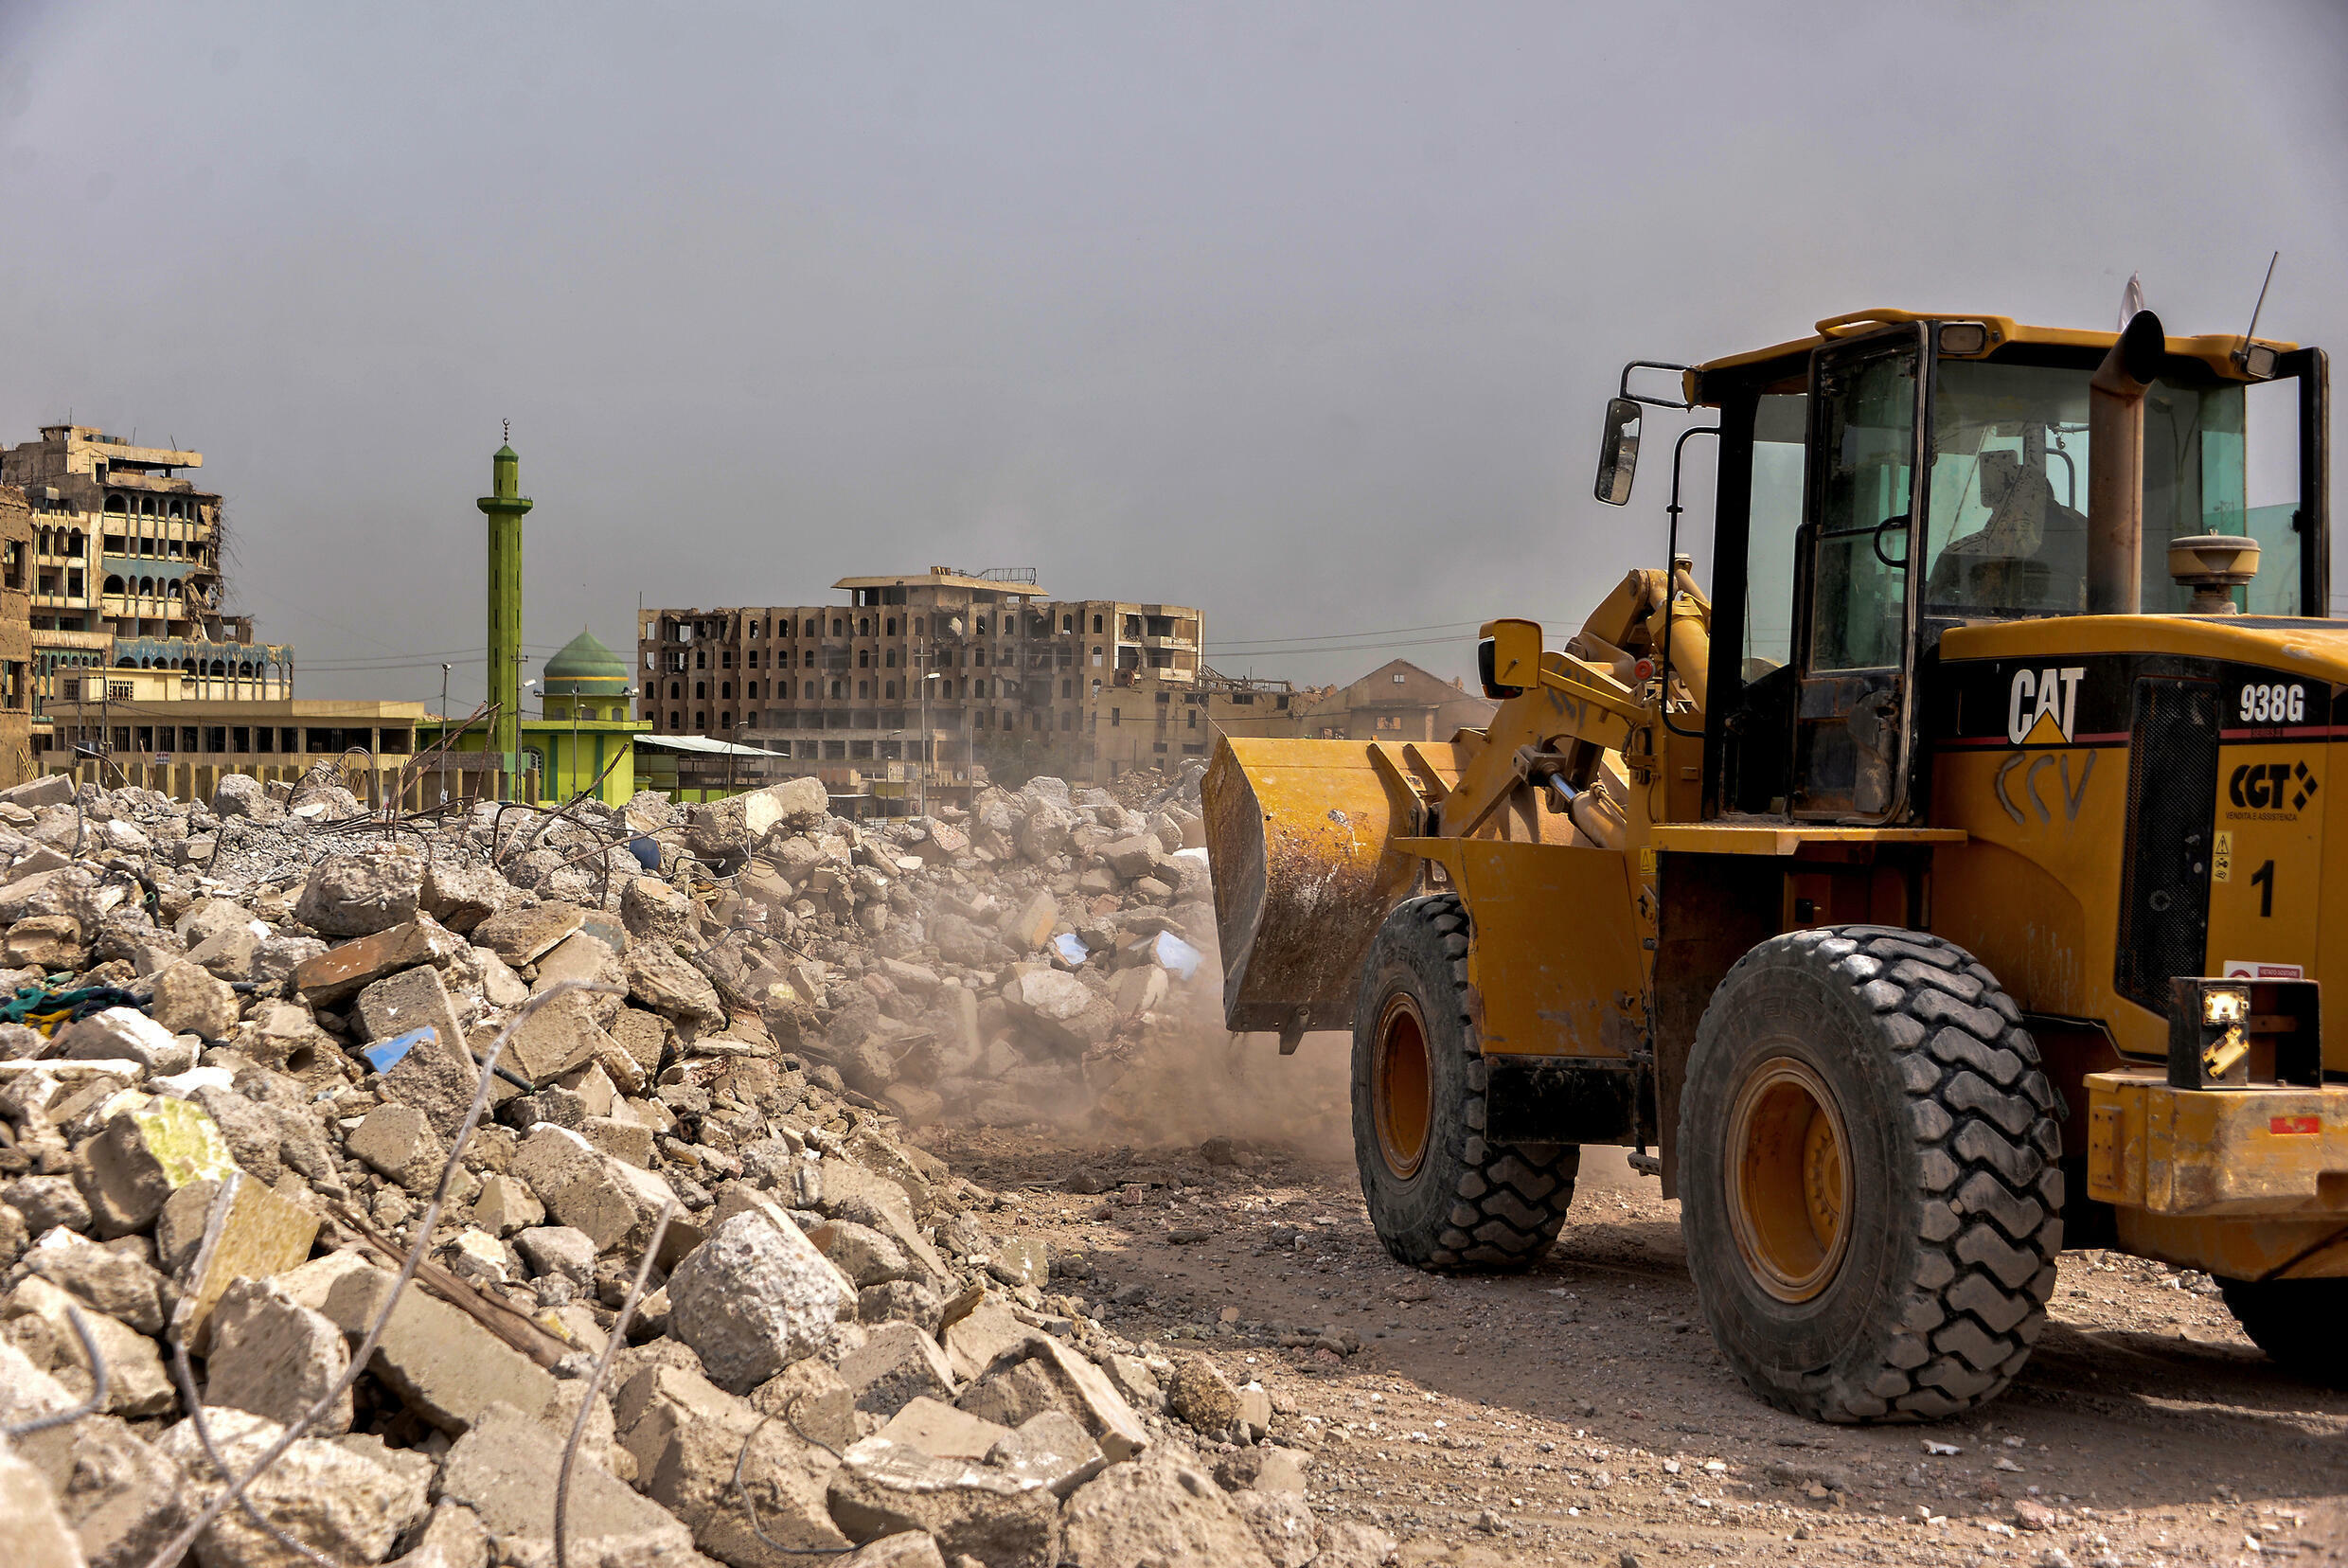 In this file photo, an excavator clears debris in the old city of Mosul on April 6, 2021. Mosul was the last major Iraqi stronghold of the failed